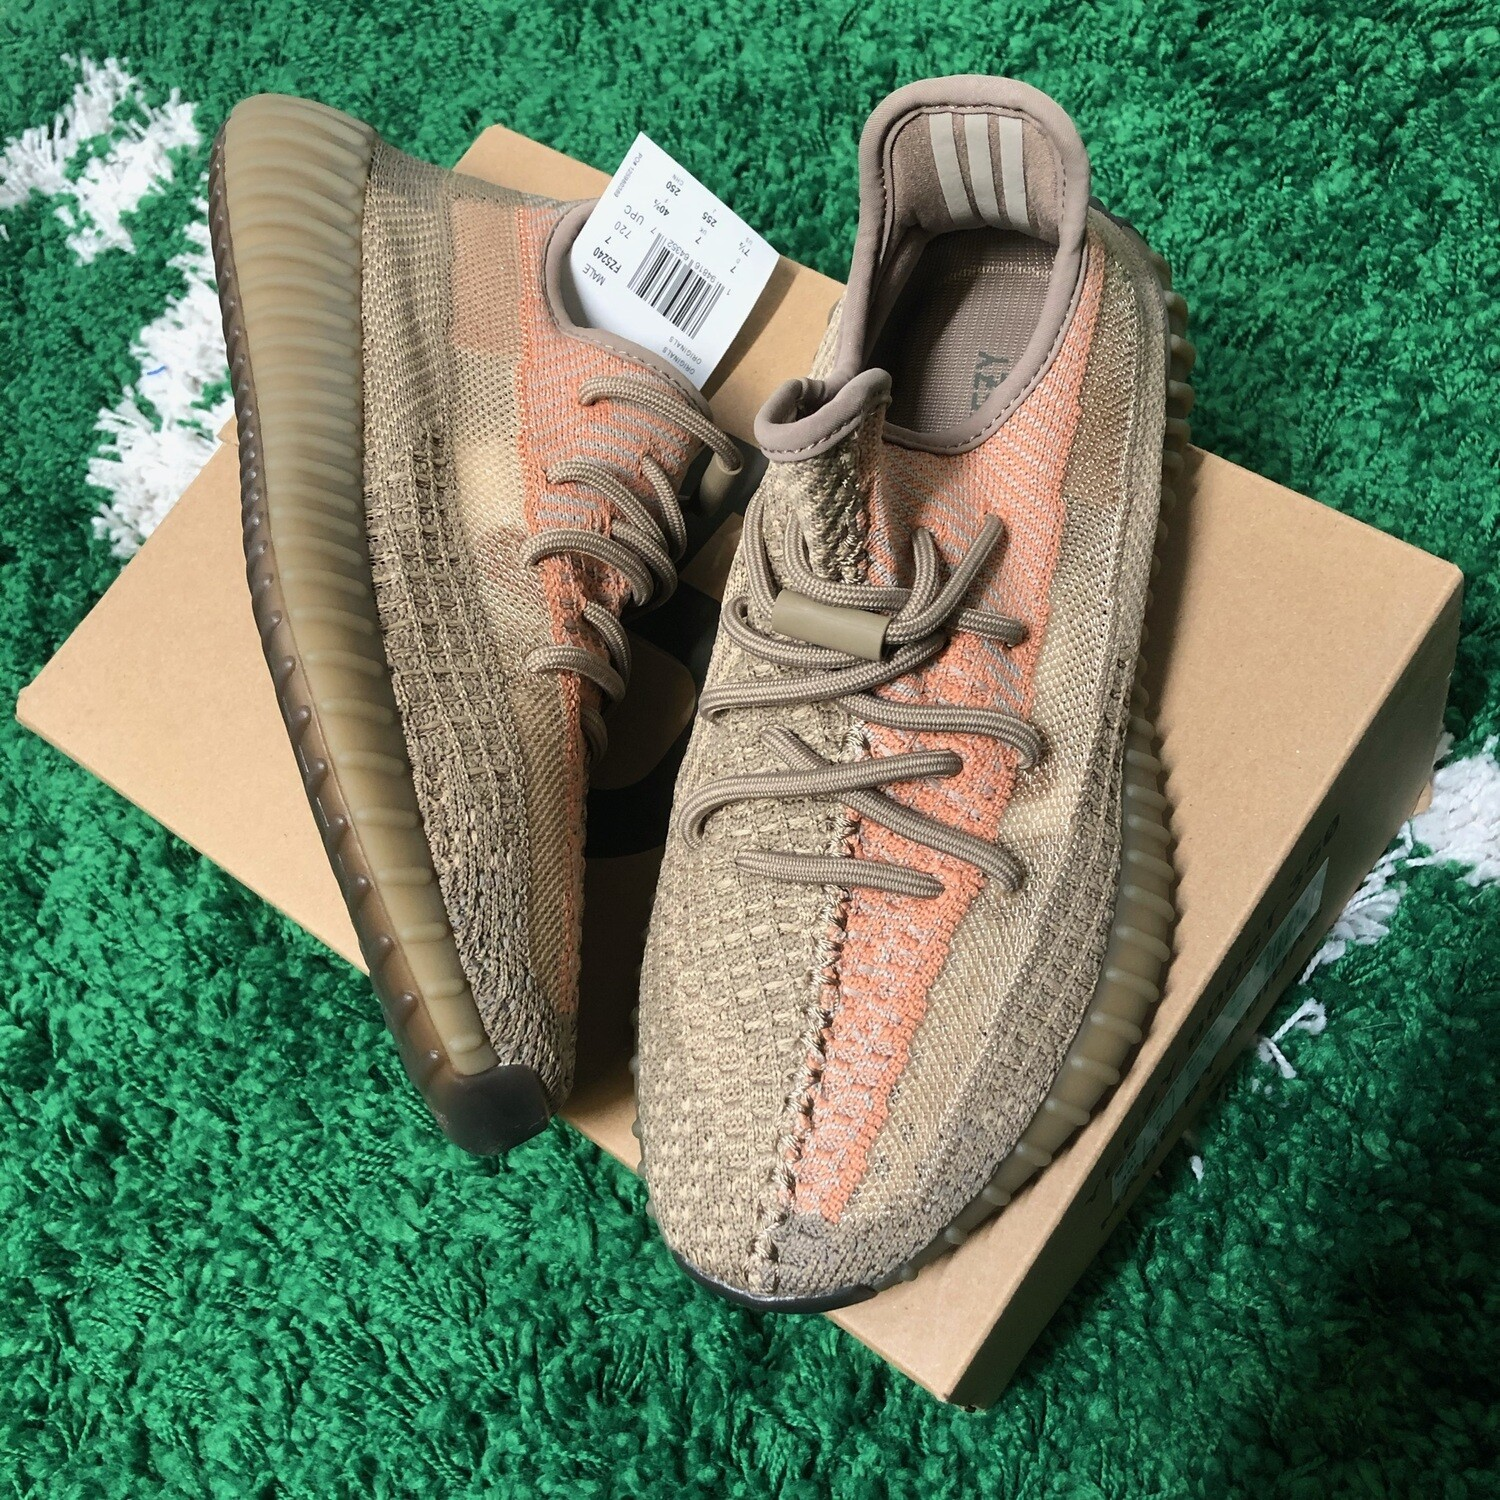 """Adidas Yeezy Boost 350 V2 """"Sand Taupe"""" Size 7.5"""